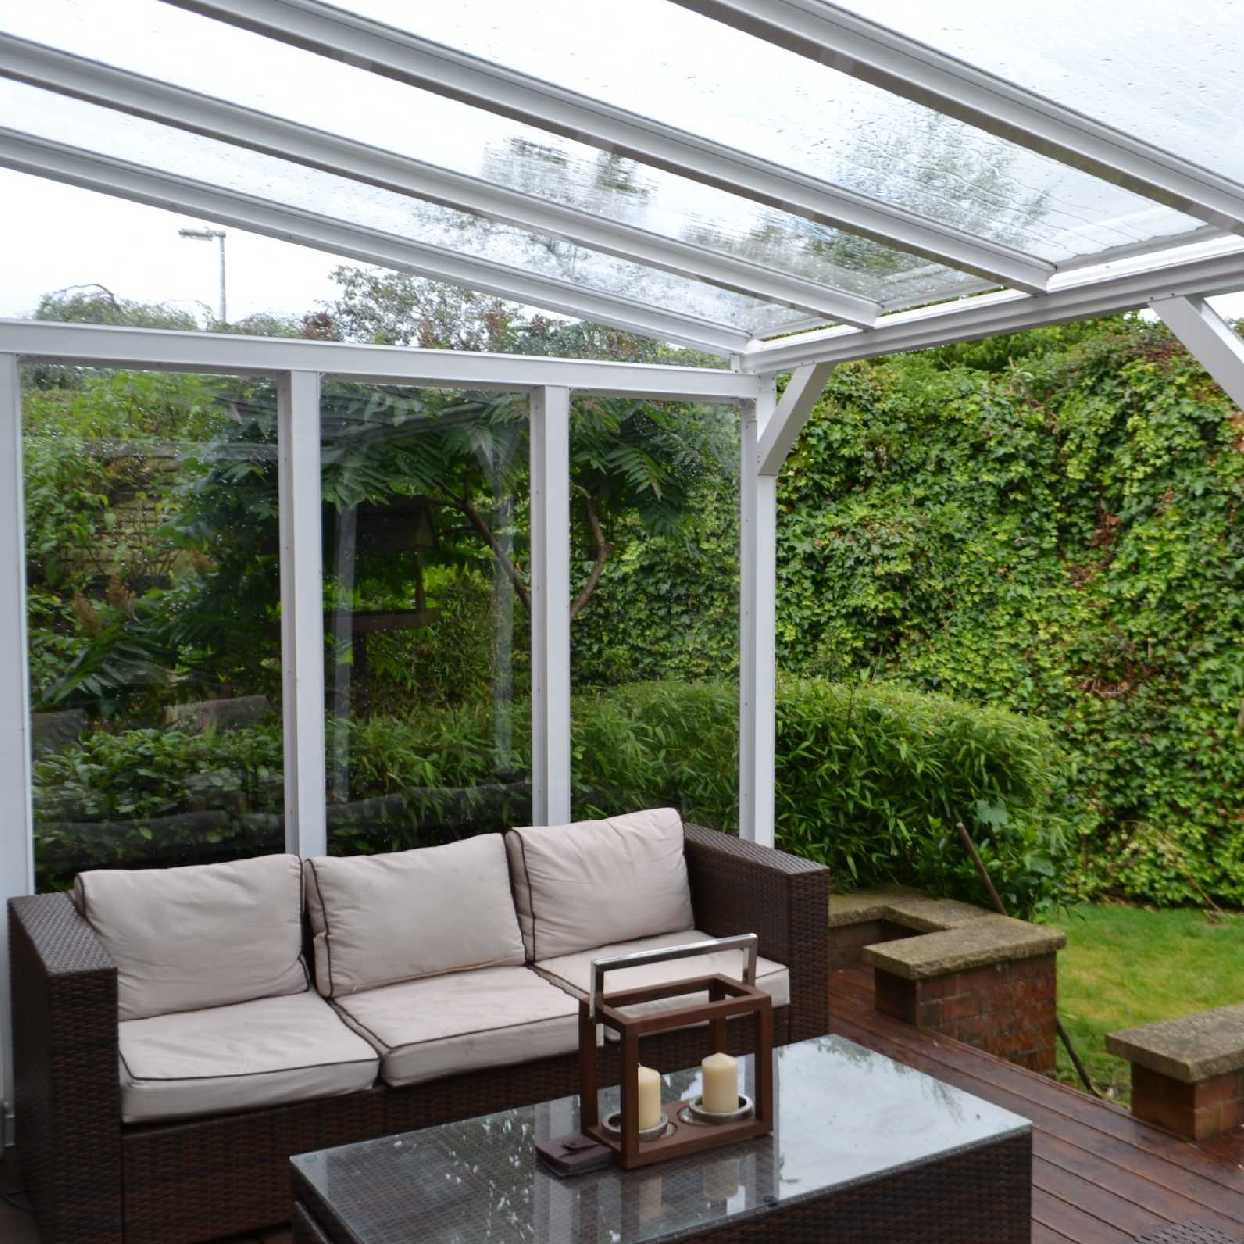 Omega Smart White Lean-To Canopy UNGLAZED for 6mm Glazing - 7.7m (W) x 2.0m (P), (4) Supporting Posts